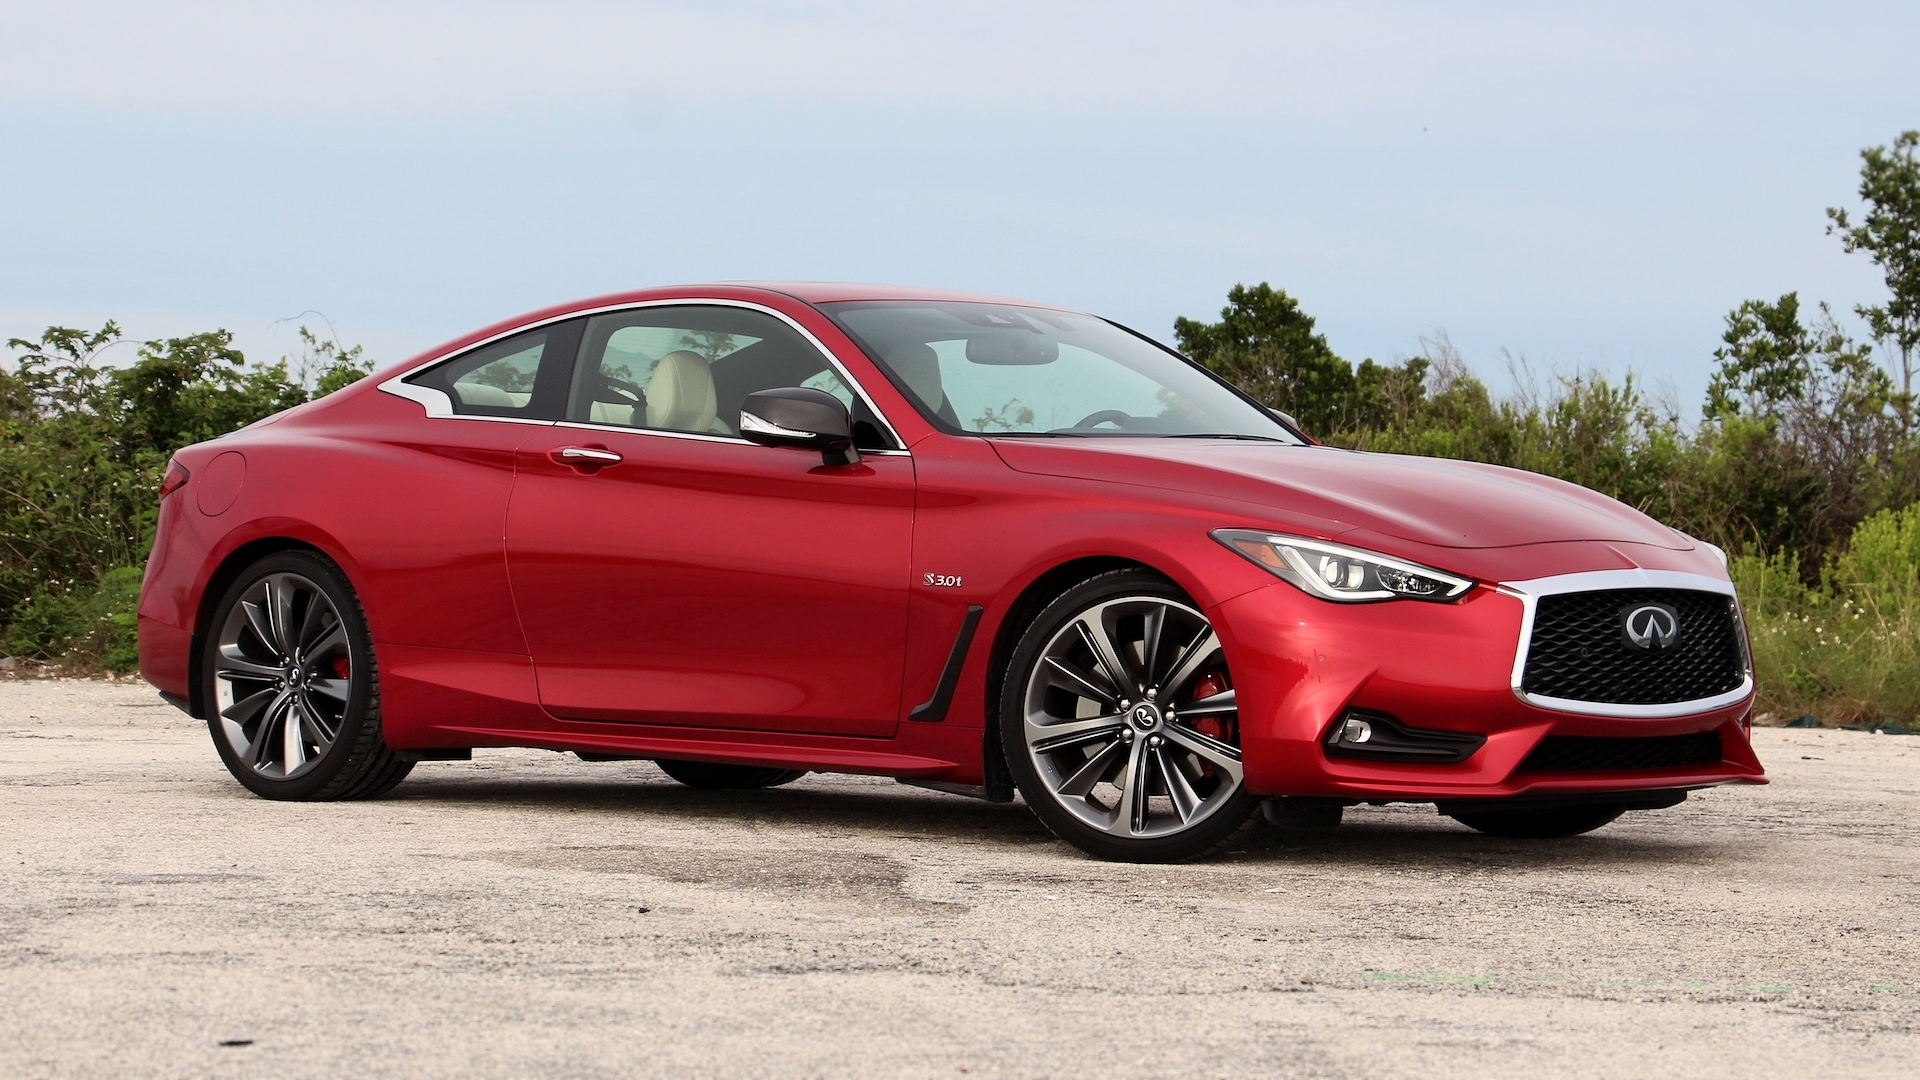 2018 Infiniti Q60 Red Sport 400 Review Skin Deep